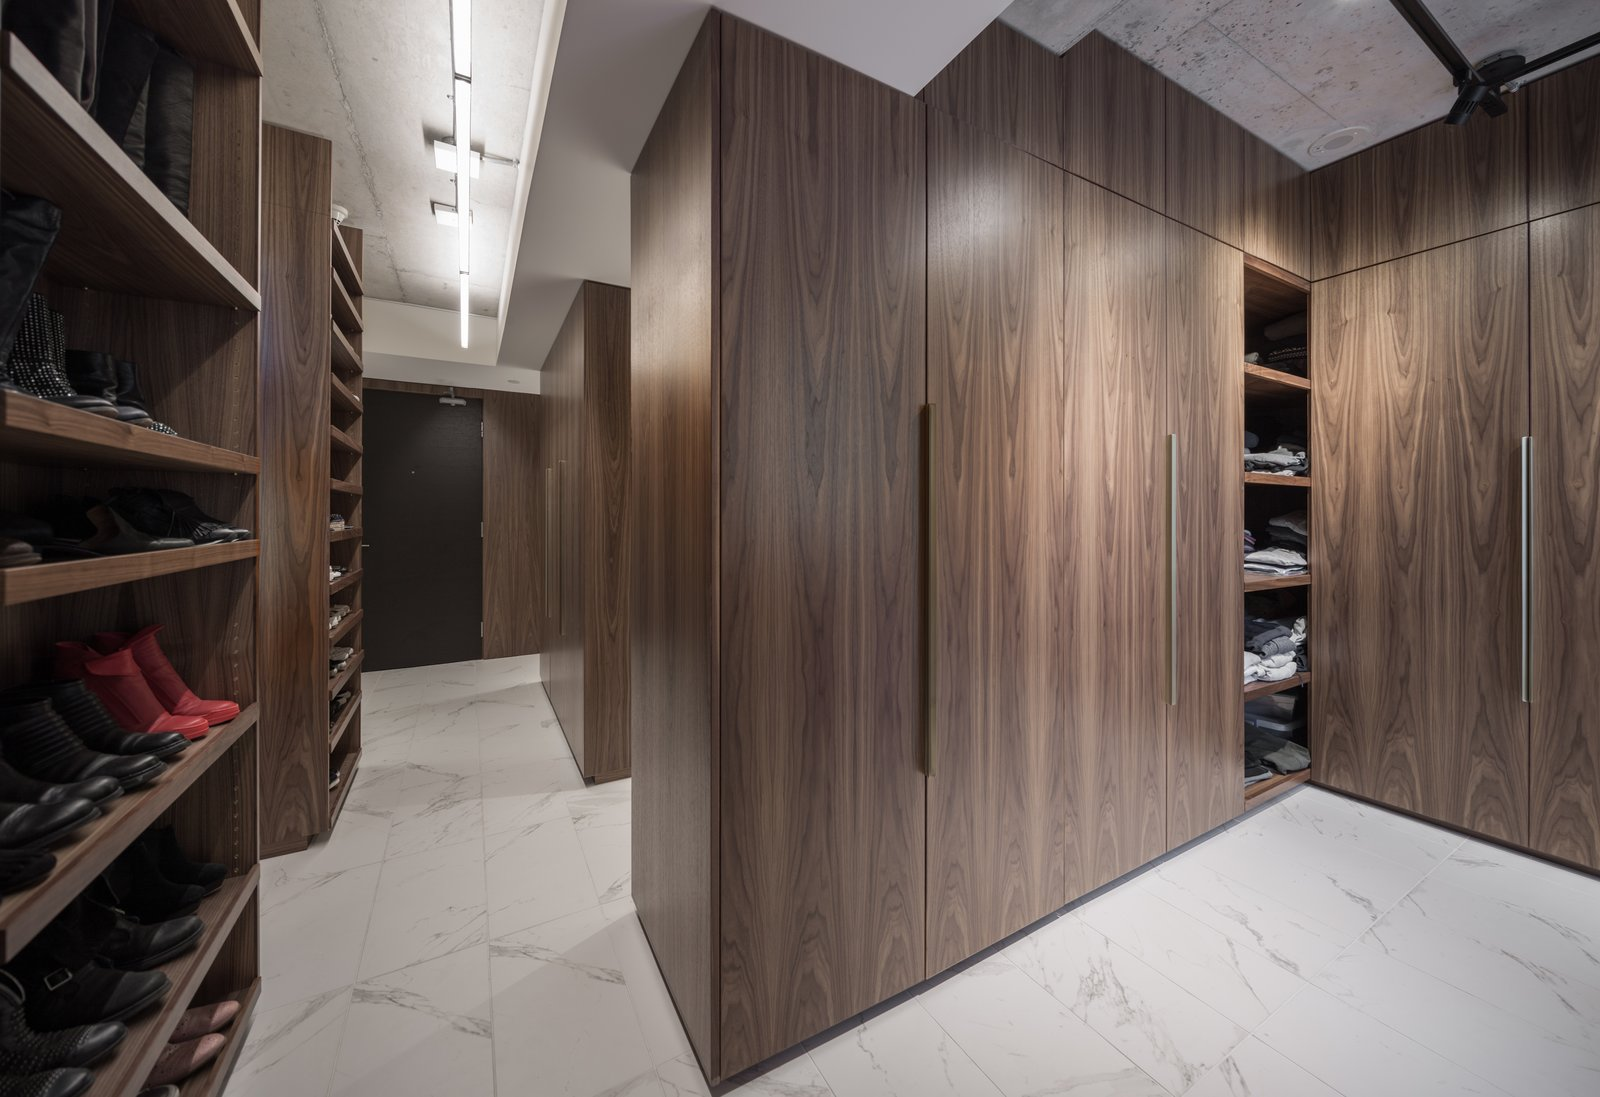 The storage units also define the dressing room area.  Thompson Hotel Private Suite by ANTHONY PROVENZANO ARCHITECTS